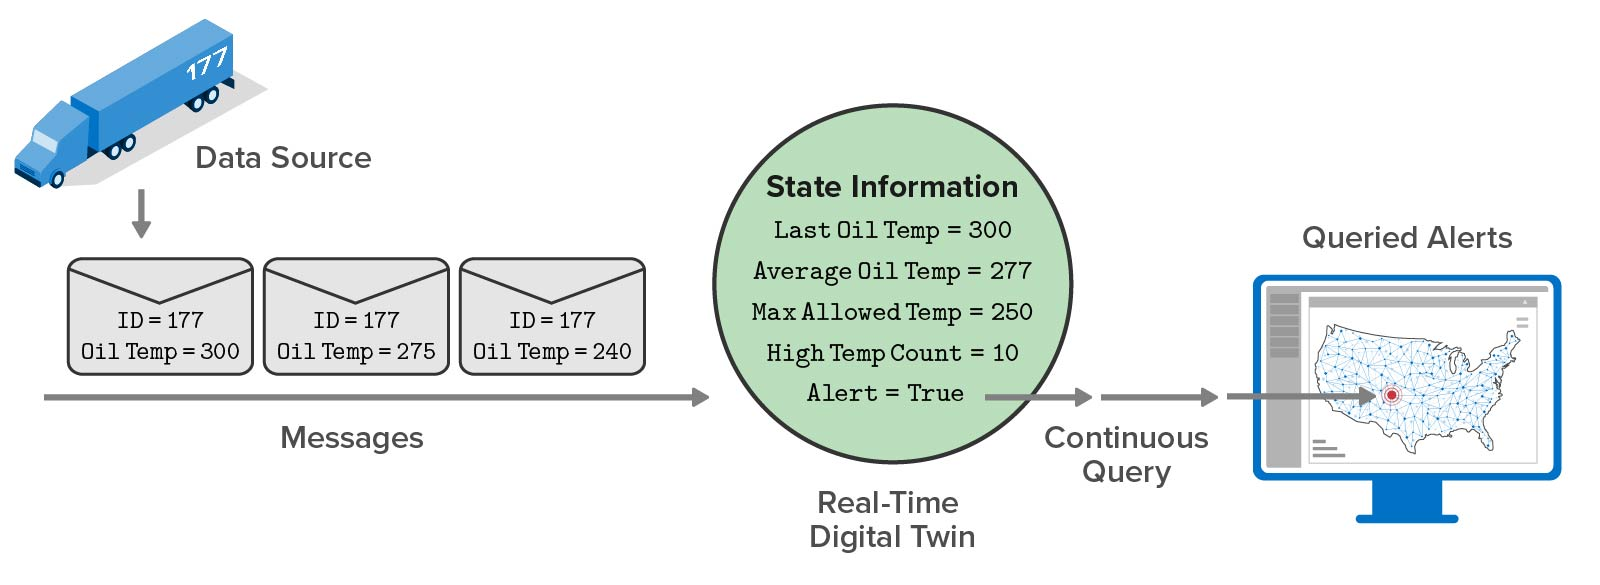 Geospatial mapping shows the results of real-time analytics, not raw telemetry.